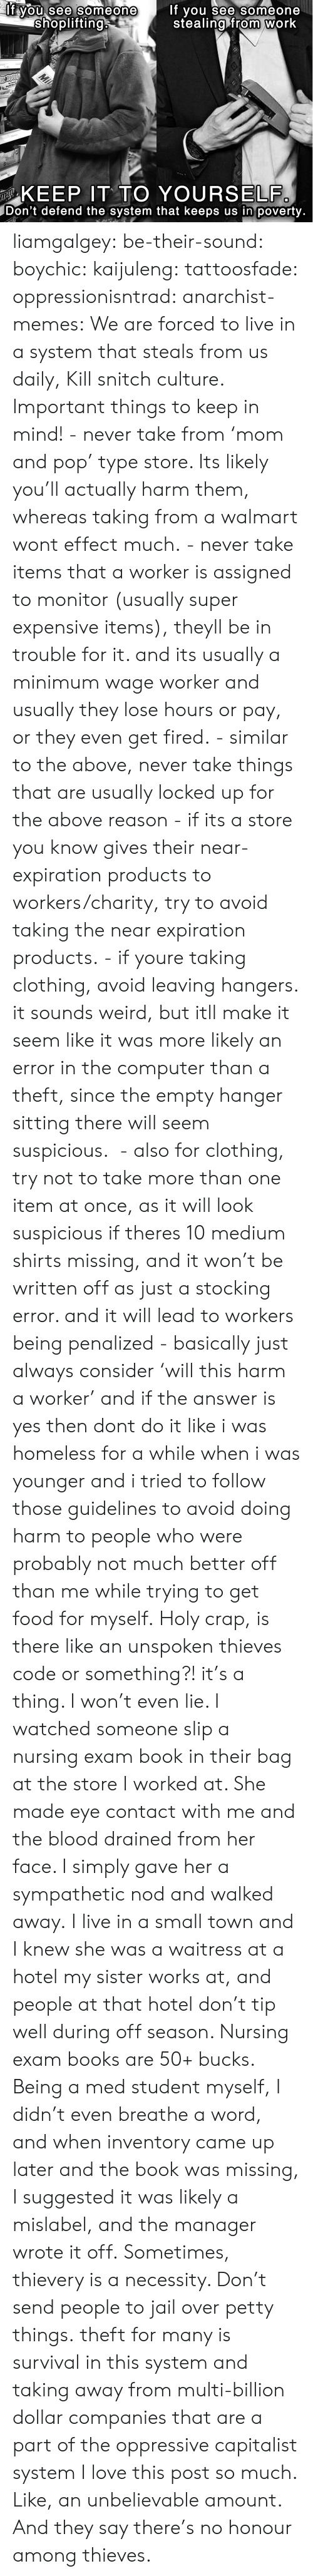 Among: If you see someone  stealing from work  lf you see someone  shoplifting  Mil  HOPPERS  KEEP IT TO YOURSELF.  IDon't defend the system that keeps us in poverty. liamgalgey: be-their-sound:  boychic:  kaijuleng:  tattoosfade:  oppressionisntrad:  anarchist-memes:  We are forced to live in a system that steals from us daily, Kill snitch culture.  Important things to keep in mind! - never take from 'mom and pop' type store. Its likely you'll actually harm them, whereas taking from a walmart wont effect much. - never take items that a worker is assigned to monitor (usually super expensive items), theyll be in trouble for it. and its usually a minimum wage worker and usually they lose hours or pay, or they even get fired. - similar to the above, never take things that are usually locked up for the above reason - if its a store you know gives their near-expiration products to workers/charity, try to avoid taking the near expiration products. - if youre taking clothing, avoid leaving hangers. it sounds weird, but itll make it seem like it was more likely an error in the computer than a theft, since the empty hanger sitting there will seem suspicious.  - also for clothing, try not to take more than one item at once, as it will look suspicious if theres 10 medium shirts missing, and it won't be written off as just a stocking error. and it will lead to workers being penalized - basically just always consider 'will this harm a worker' and if the answer is yes then dont do it like i was homeless for a while when i was younger and i tried to follow those guidelines to avoid doing harm to people who were probably not much better off than me while trying to get food for myself.  Holy crap, is there like an unspoken thieves code or something?!  it's a thing. I won't even lie. I watched someone slip a nursing exam book in their bag at the store I worked at. She made eye contact with me and the blood drained from her face. I simply gave her a sympathetic nod and walked away. I live in a small town and I knew she was a waitress at a hotel my sister works at, and people at that hotel don't tip well during off season. Nursing exam books are 50+ bucks. Being a med student myself, I didn't even breathe a word, and when inventory came up later and the book was missing, I suggested it was likely a mislabel, and the manager wrote it off. Sometimes, thievery is a necessity. Don't send people to jail over petty things.  theft for many is survival in this system and taking away from multi-billion dollar companies that are a part of the oppressive capitalist system  I love this post so much. Like, an unbelievable amount.   And they say there's no honour among thieves.